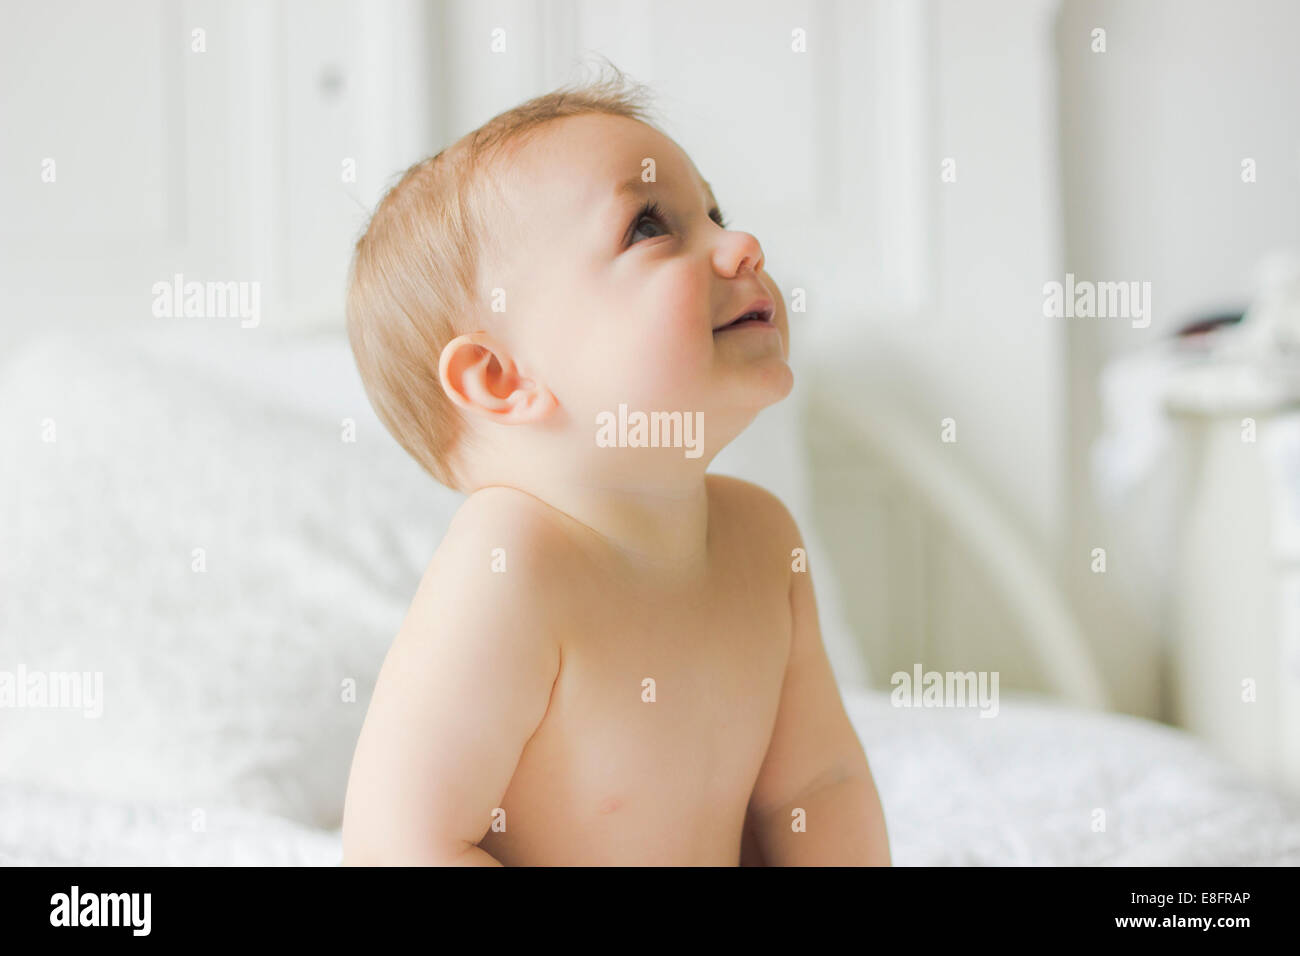 Portrait of Smiling baby sitting on bed in bedroom - Stock Image